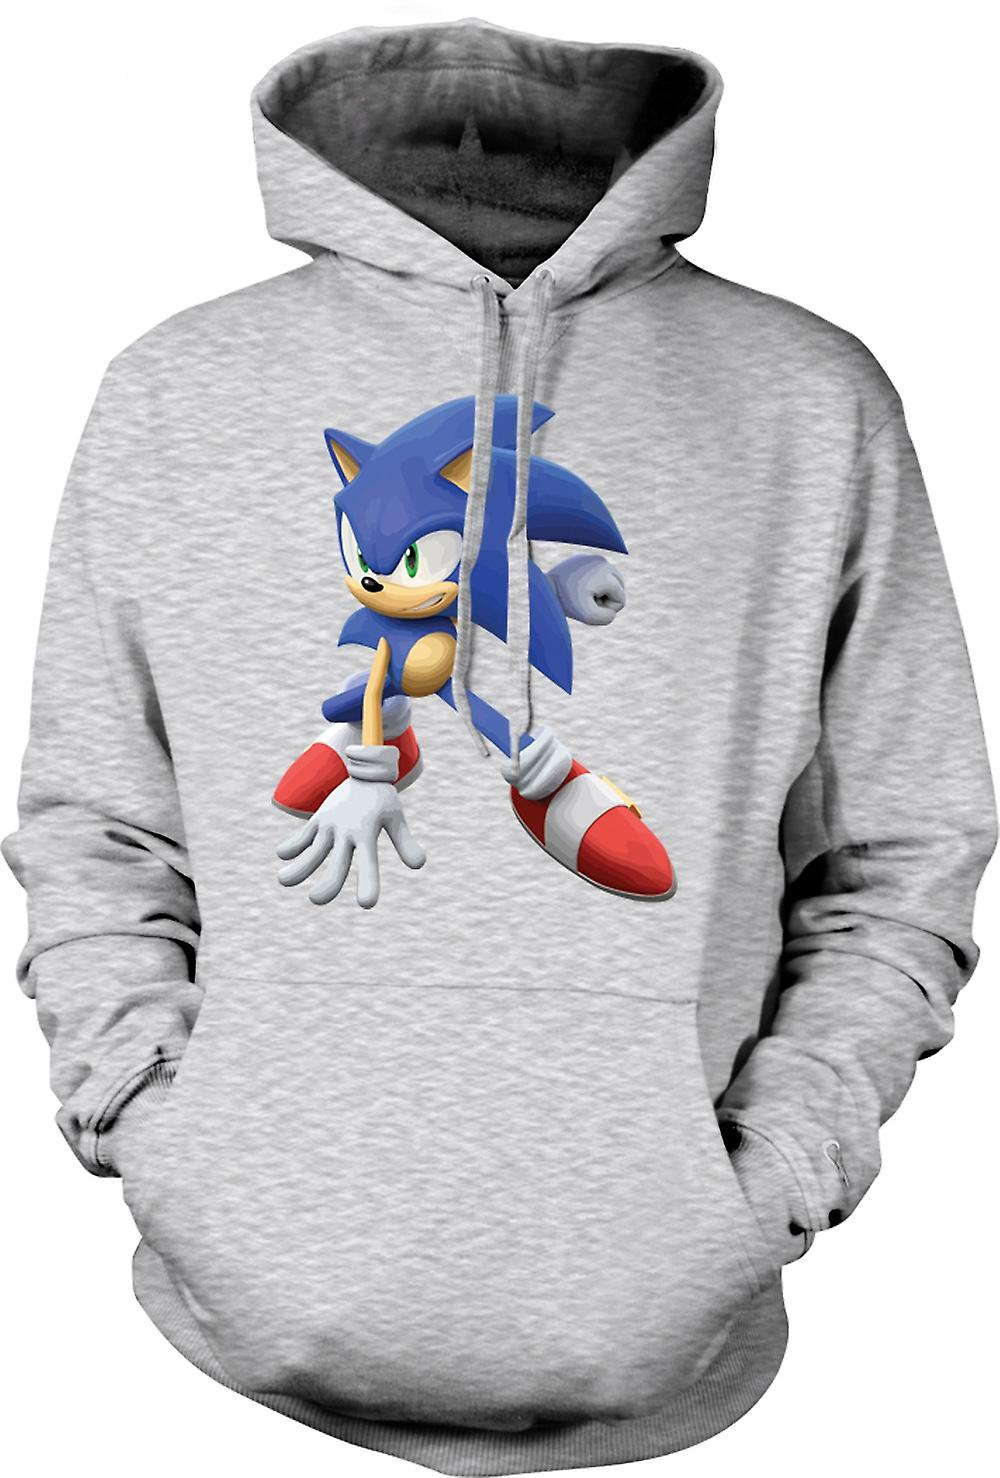 Para hombre con capucha - Sonic The Hedgehog - Gamer